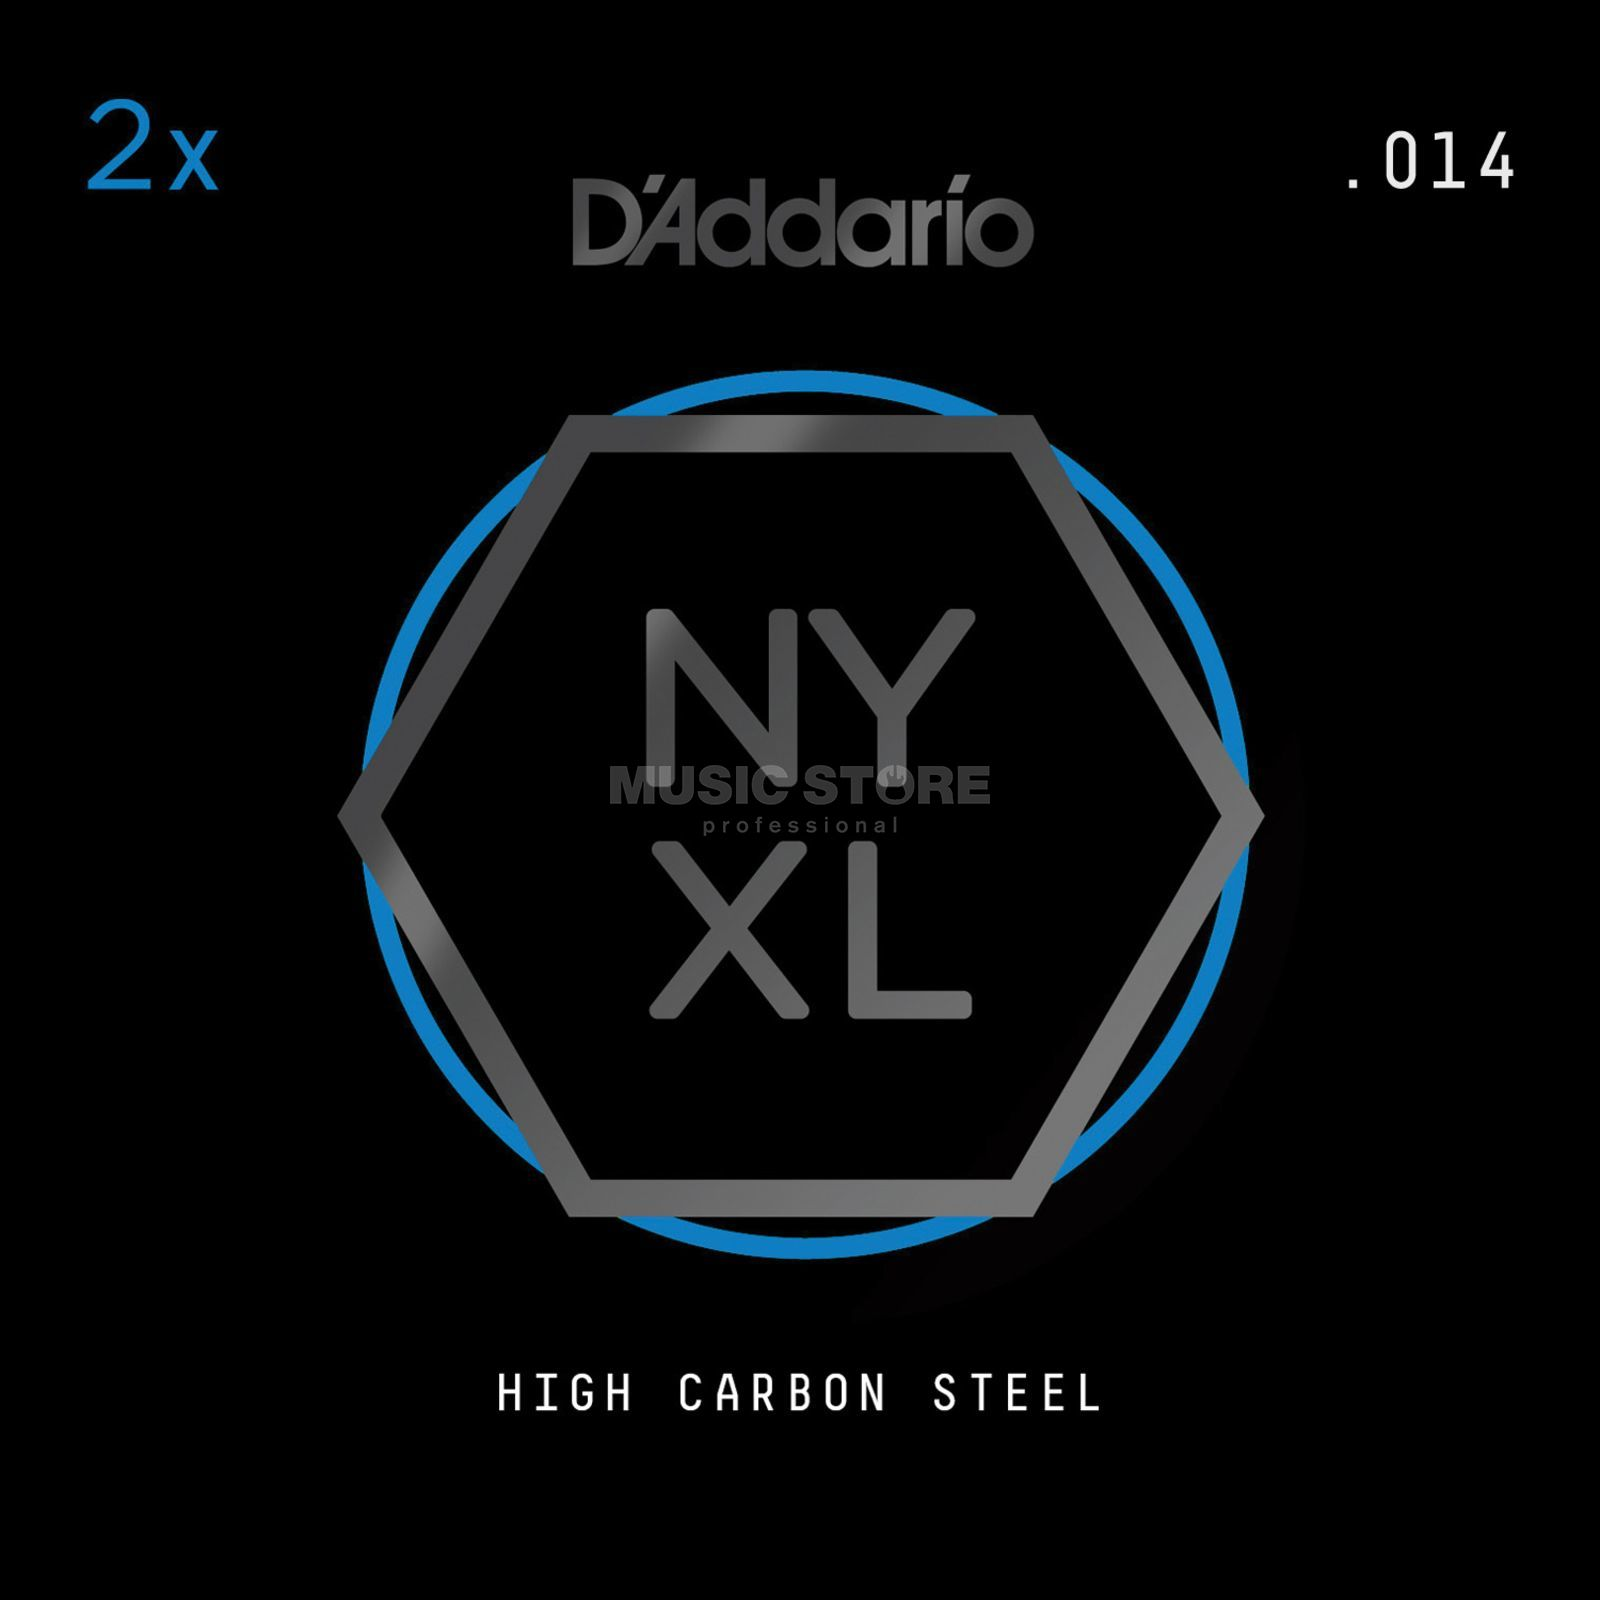 D'Addario NYPL014 Plain Single String 2-Pack - High Carbon Steel Product Image